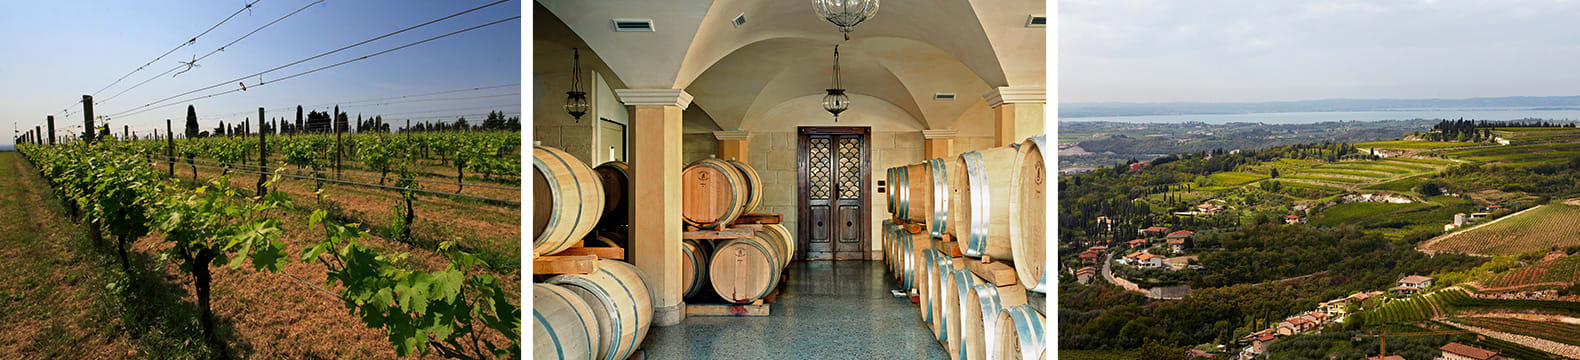 winery allegrini